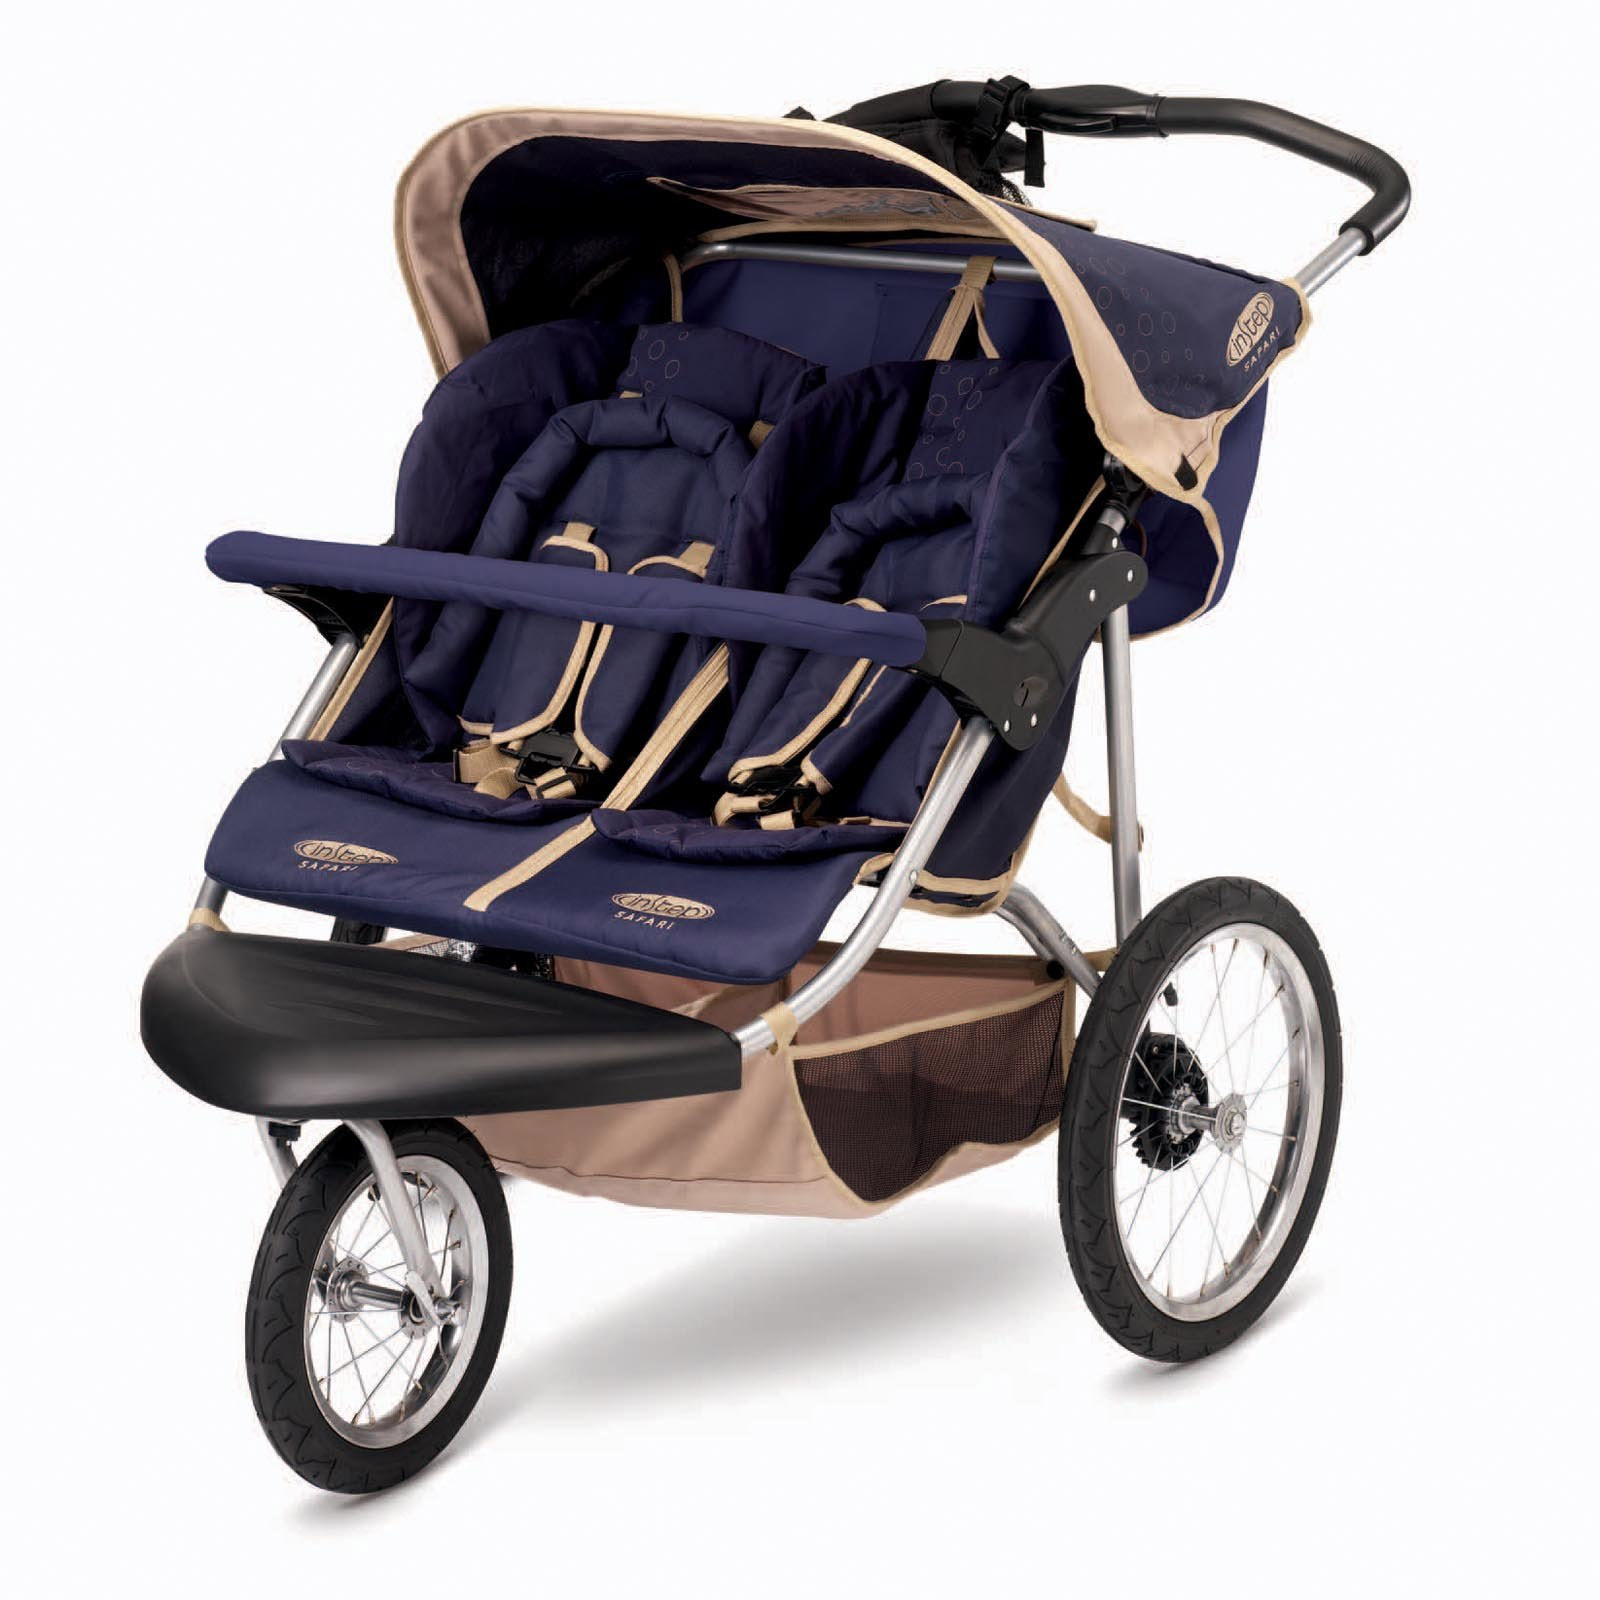 InStep Safari Double Baby Jogging Stroller - Blue | eBay